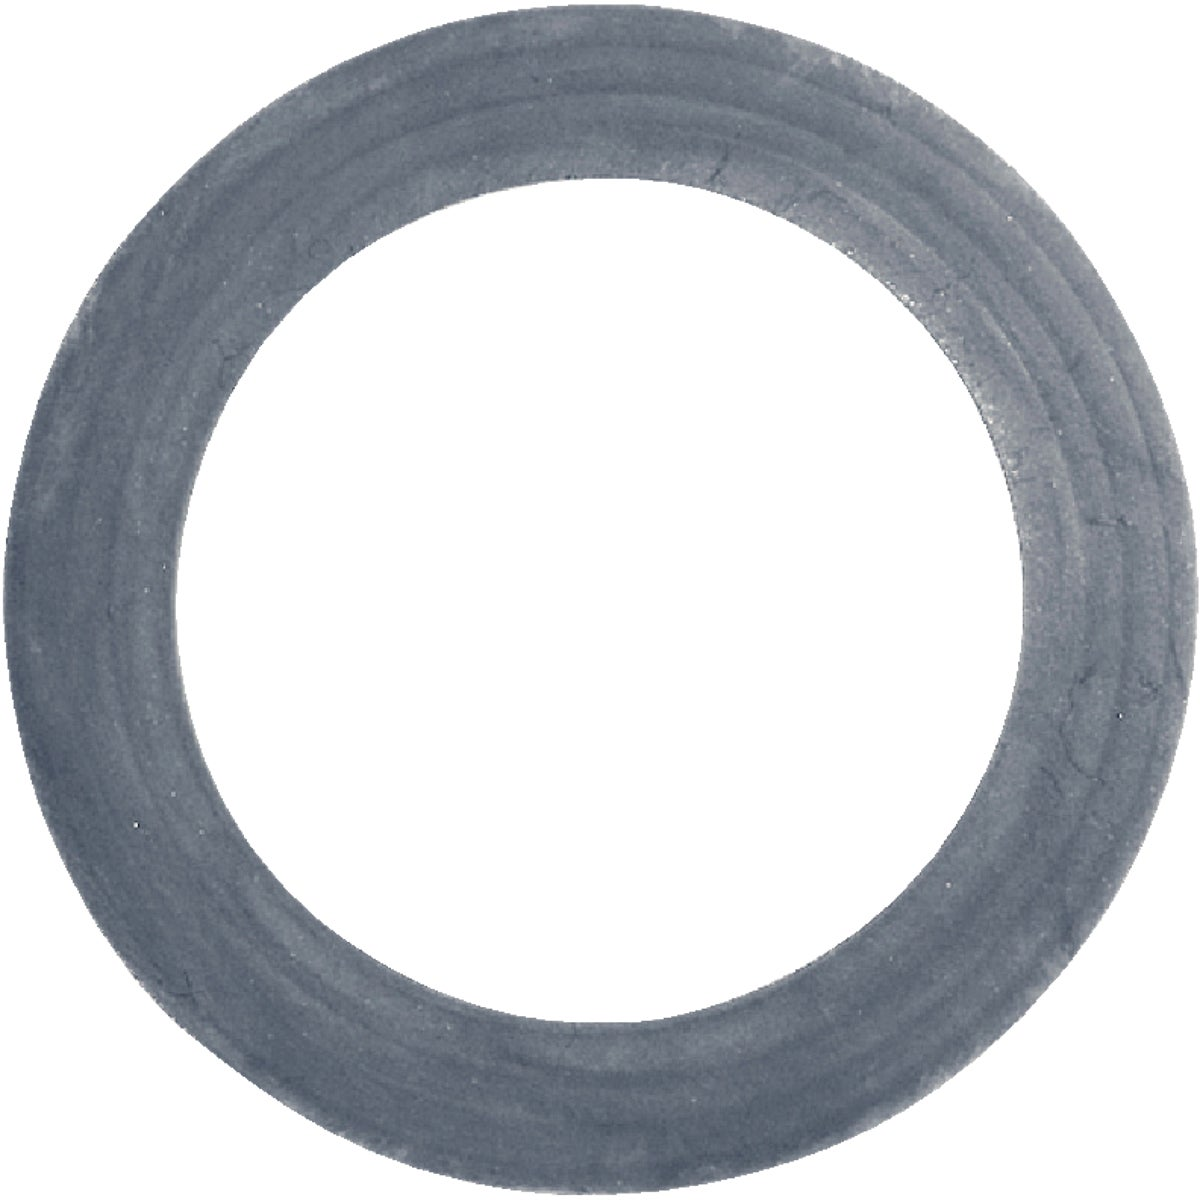 "1-23/32"" S/JNT WASHER - 36647B by Danco Perfect Match"